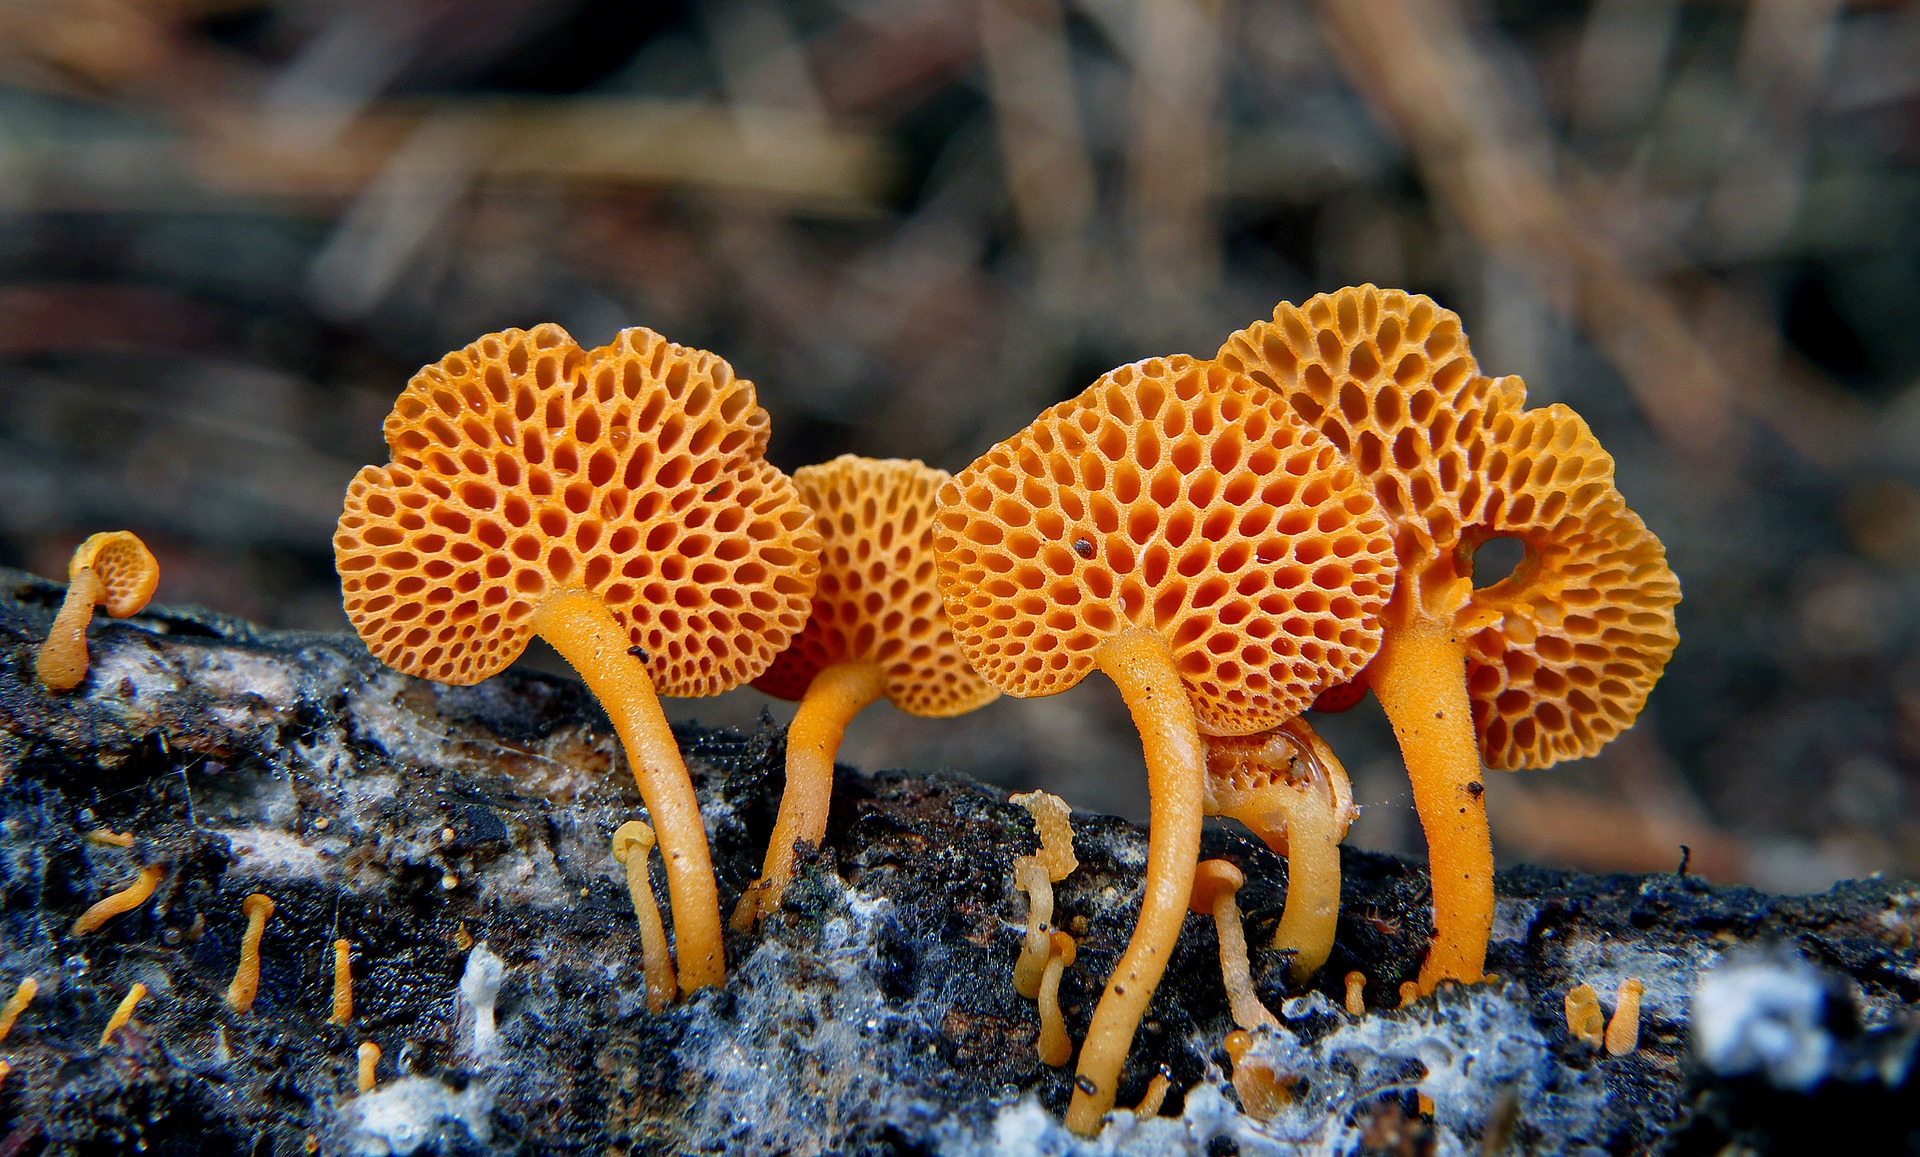 Image: Stand of Orange Pore Fungi